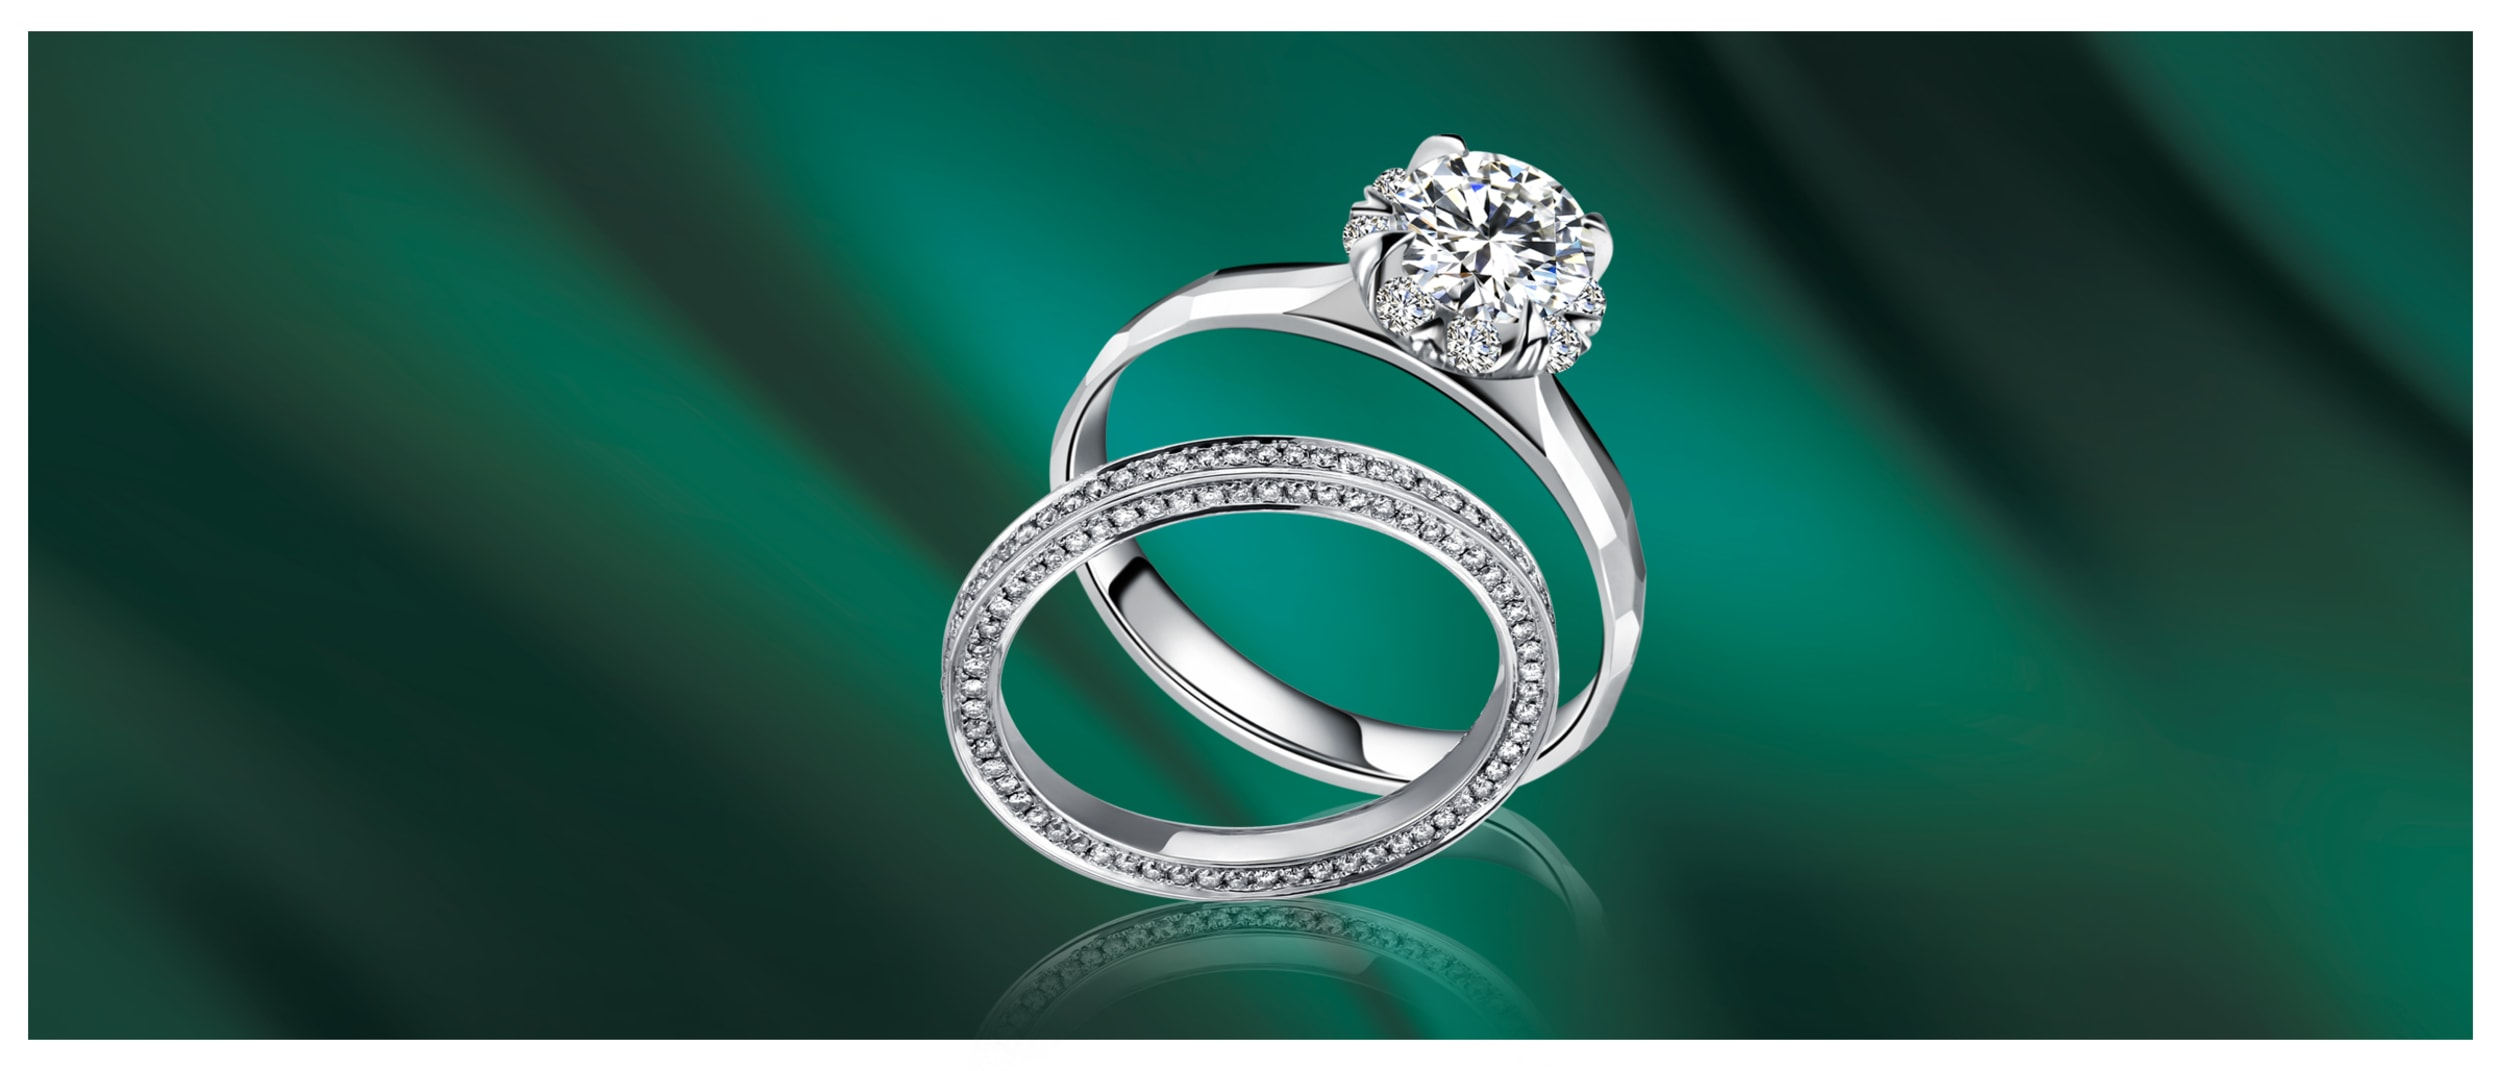 Planning on a proposal? Let Golston Jewellery help you